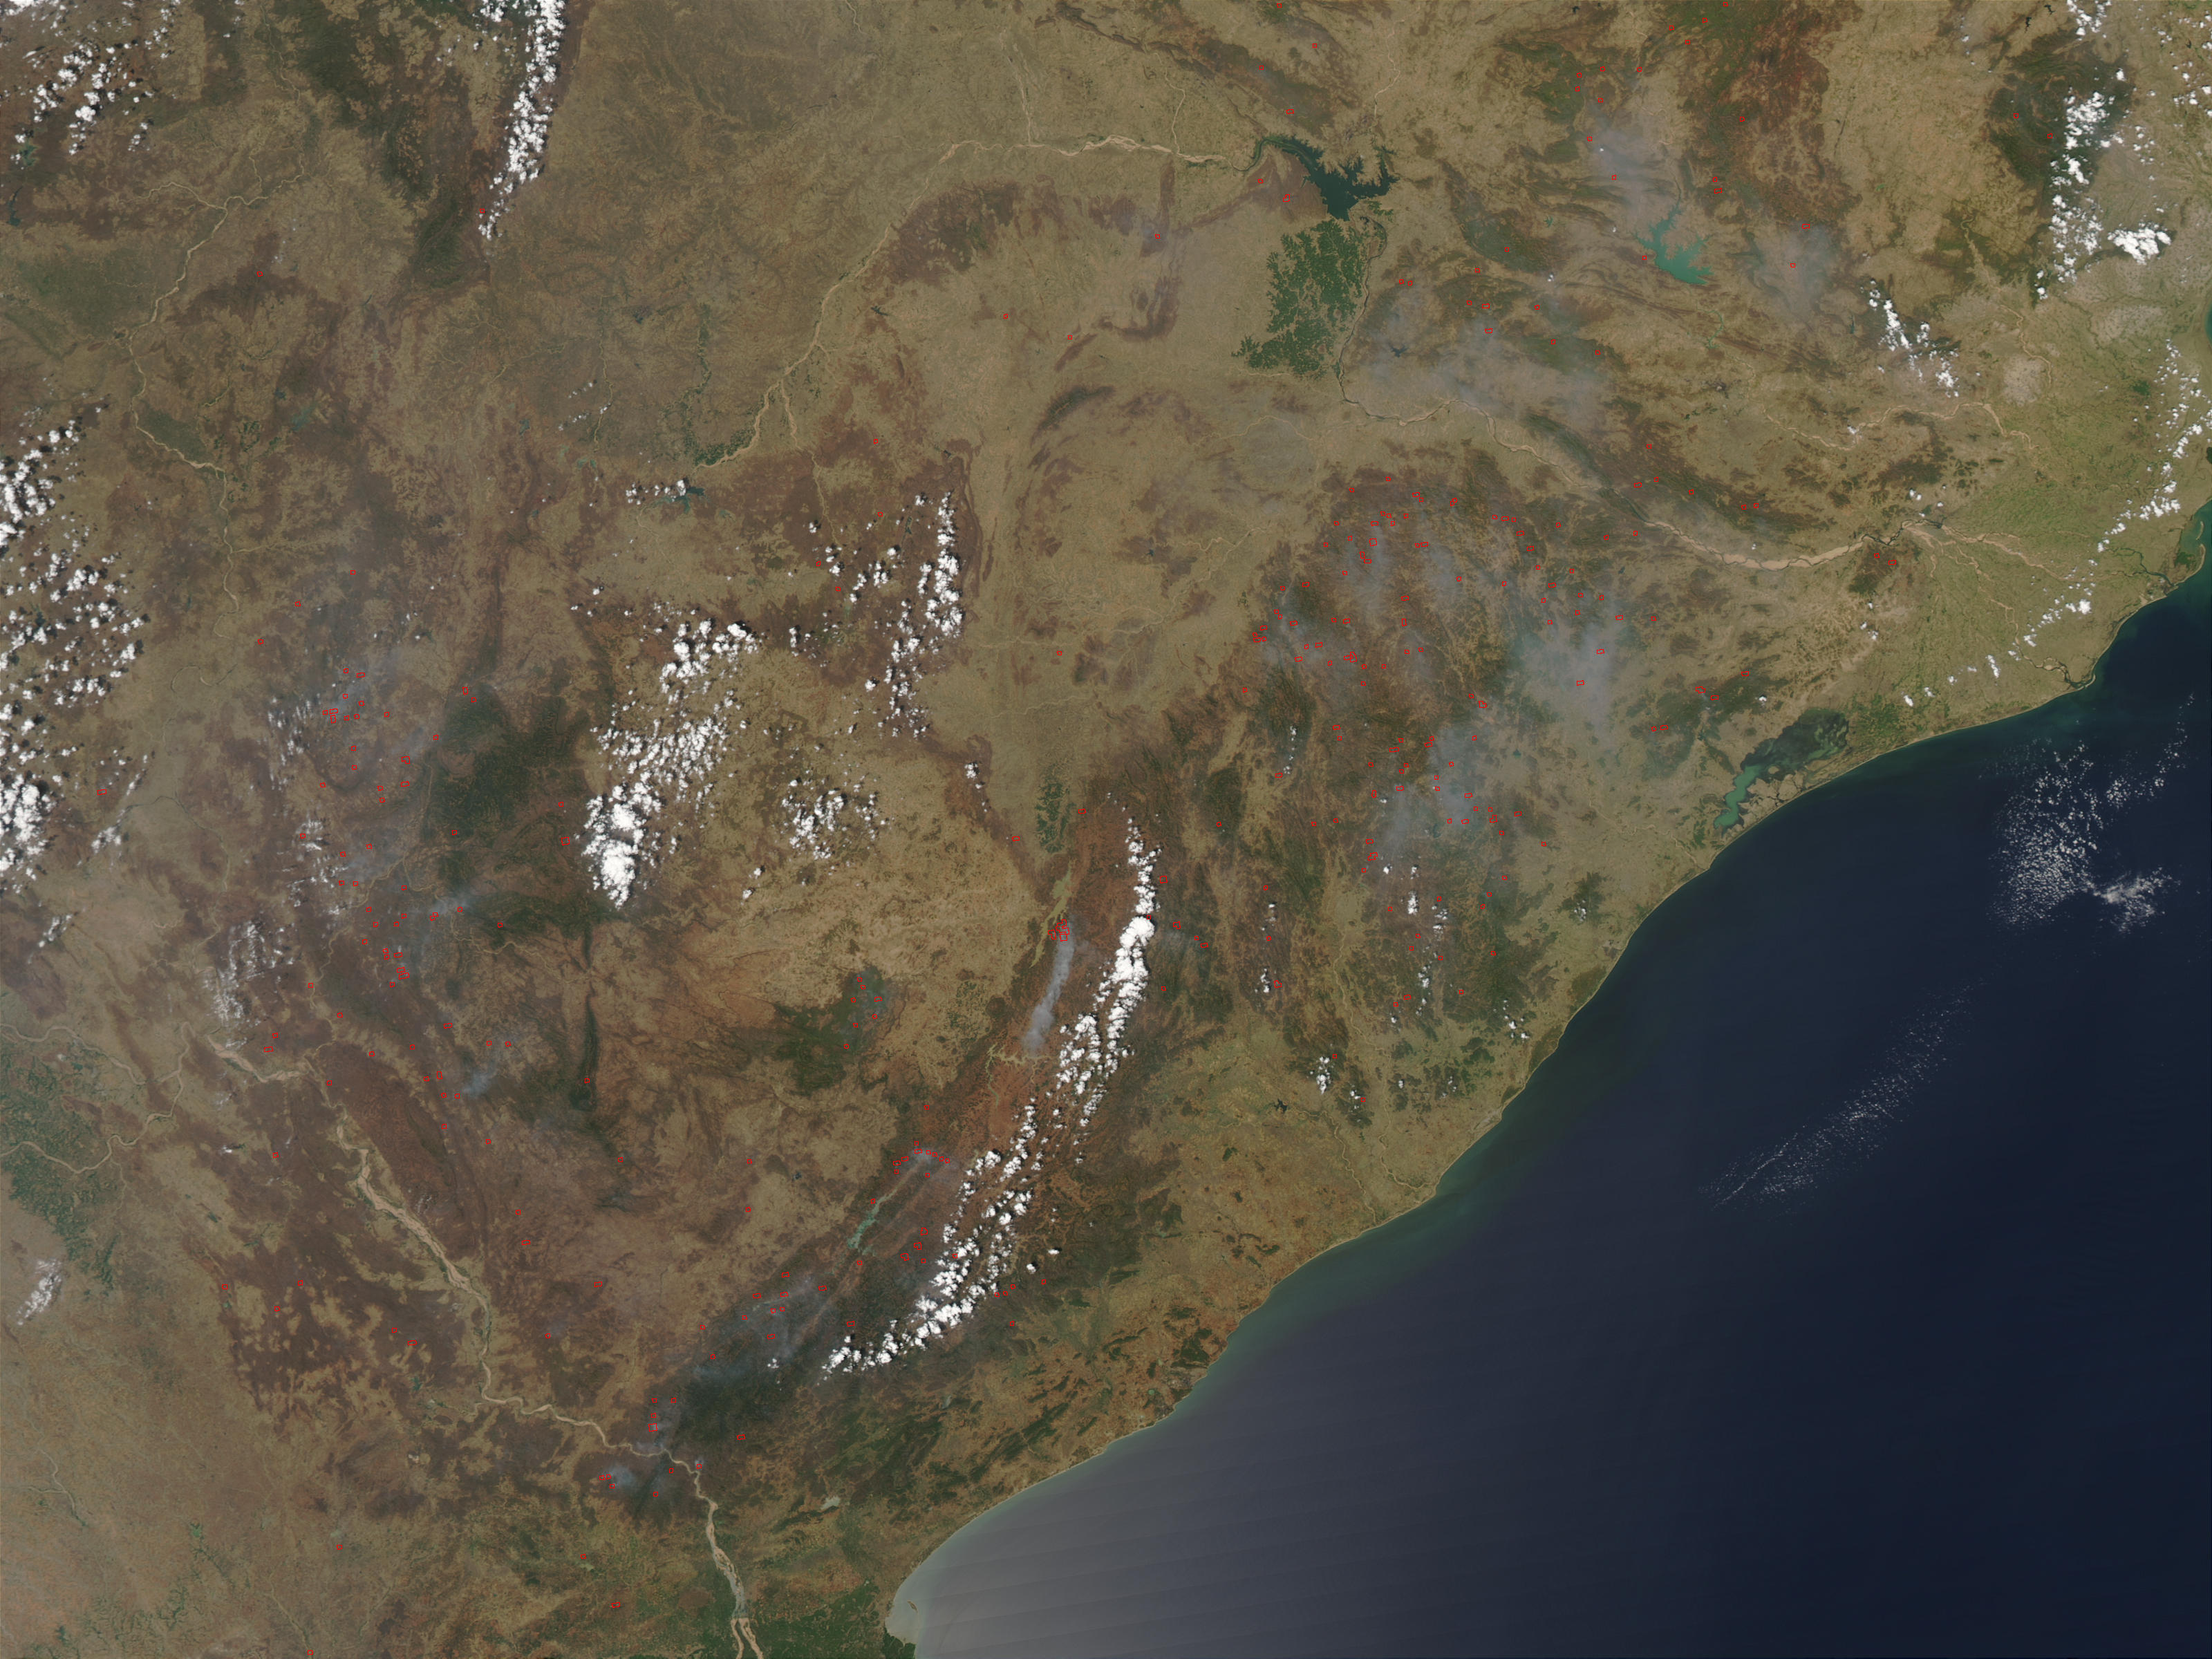 Fires in eastern India